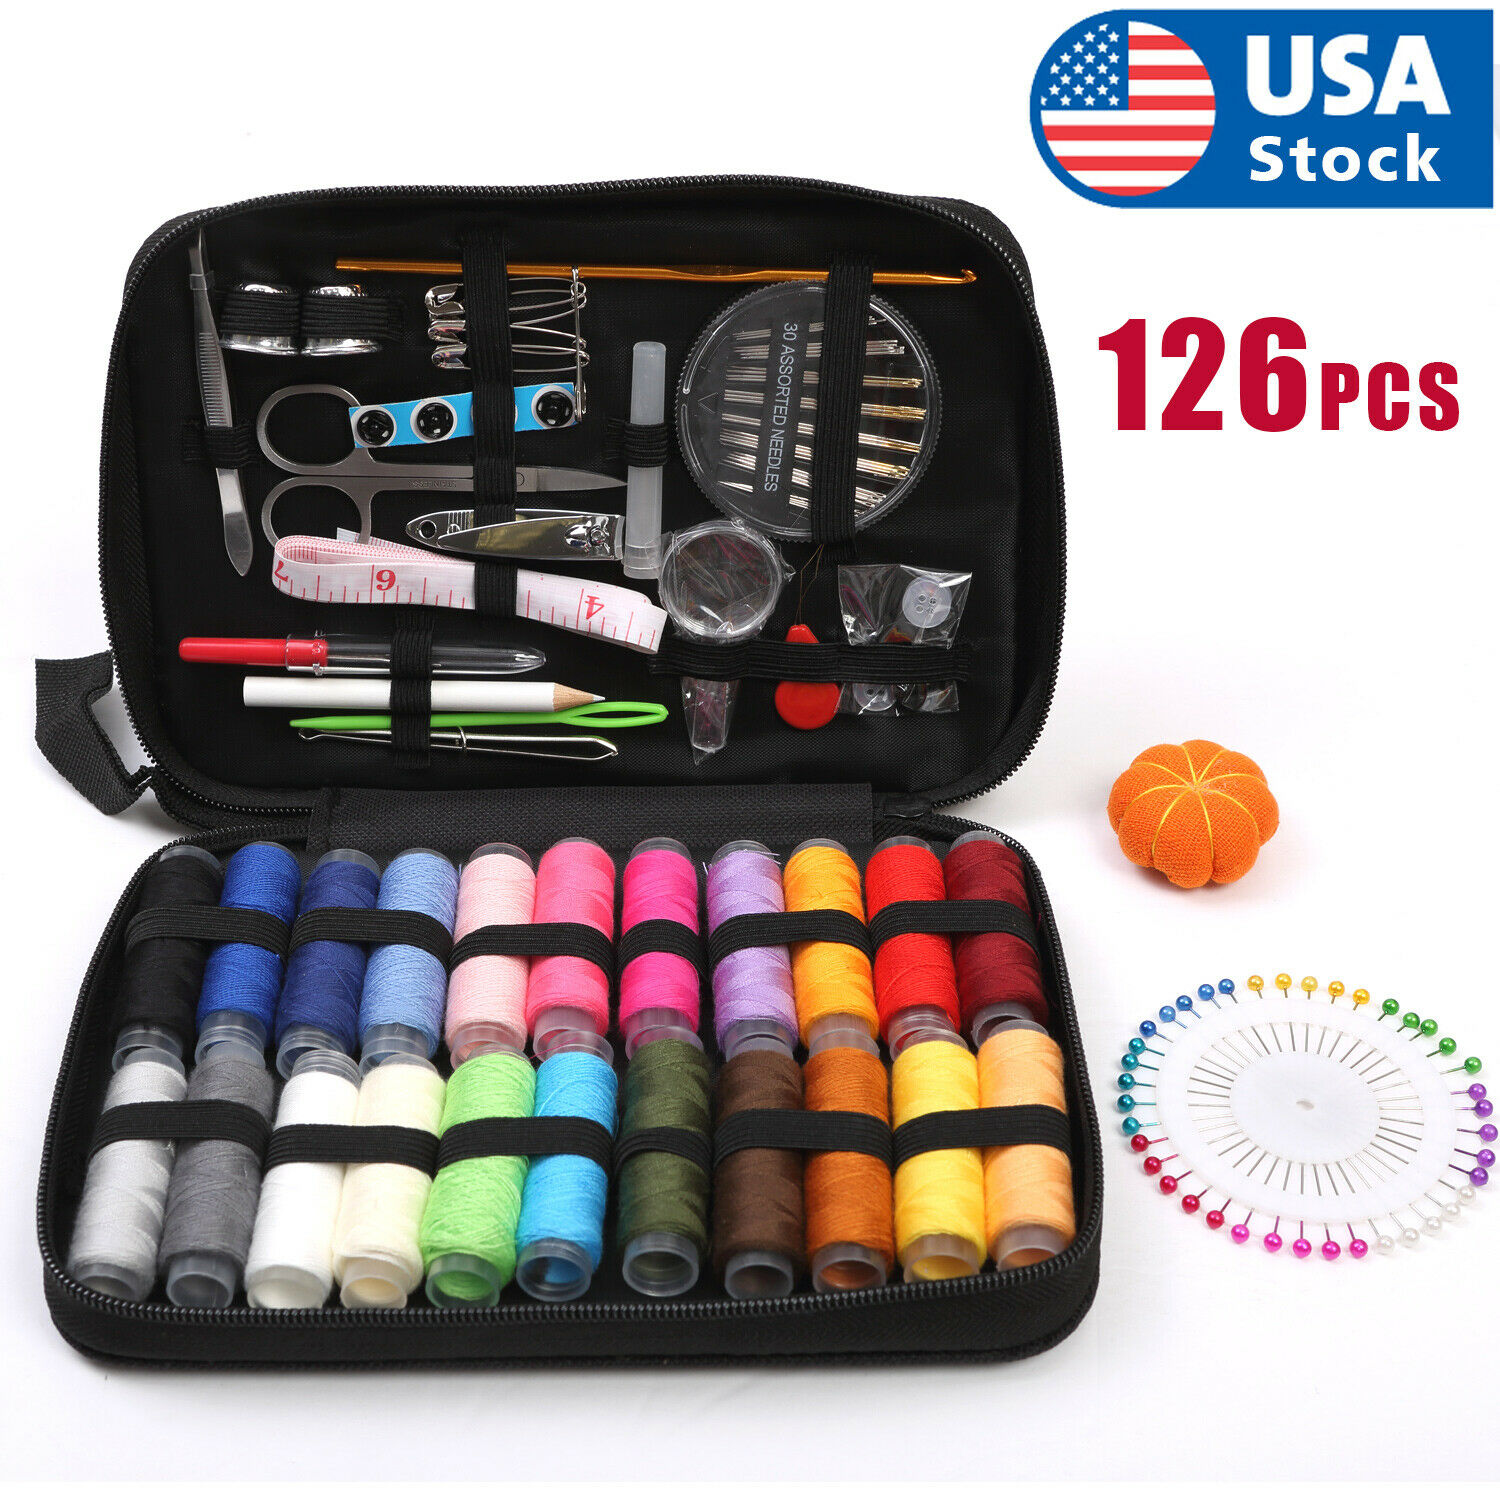 126Pcs/Set Sewing Kit Scissors Needle Thread For Home Stitching Hand Sewing Tool Collectibles